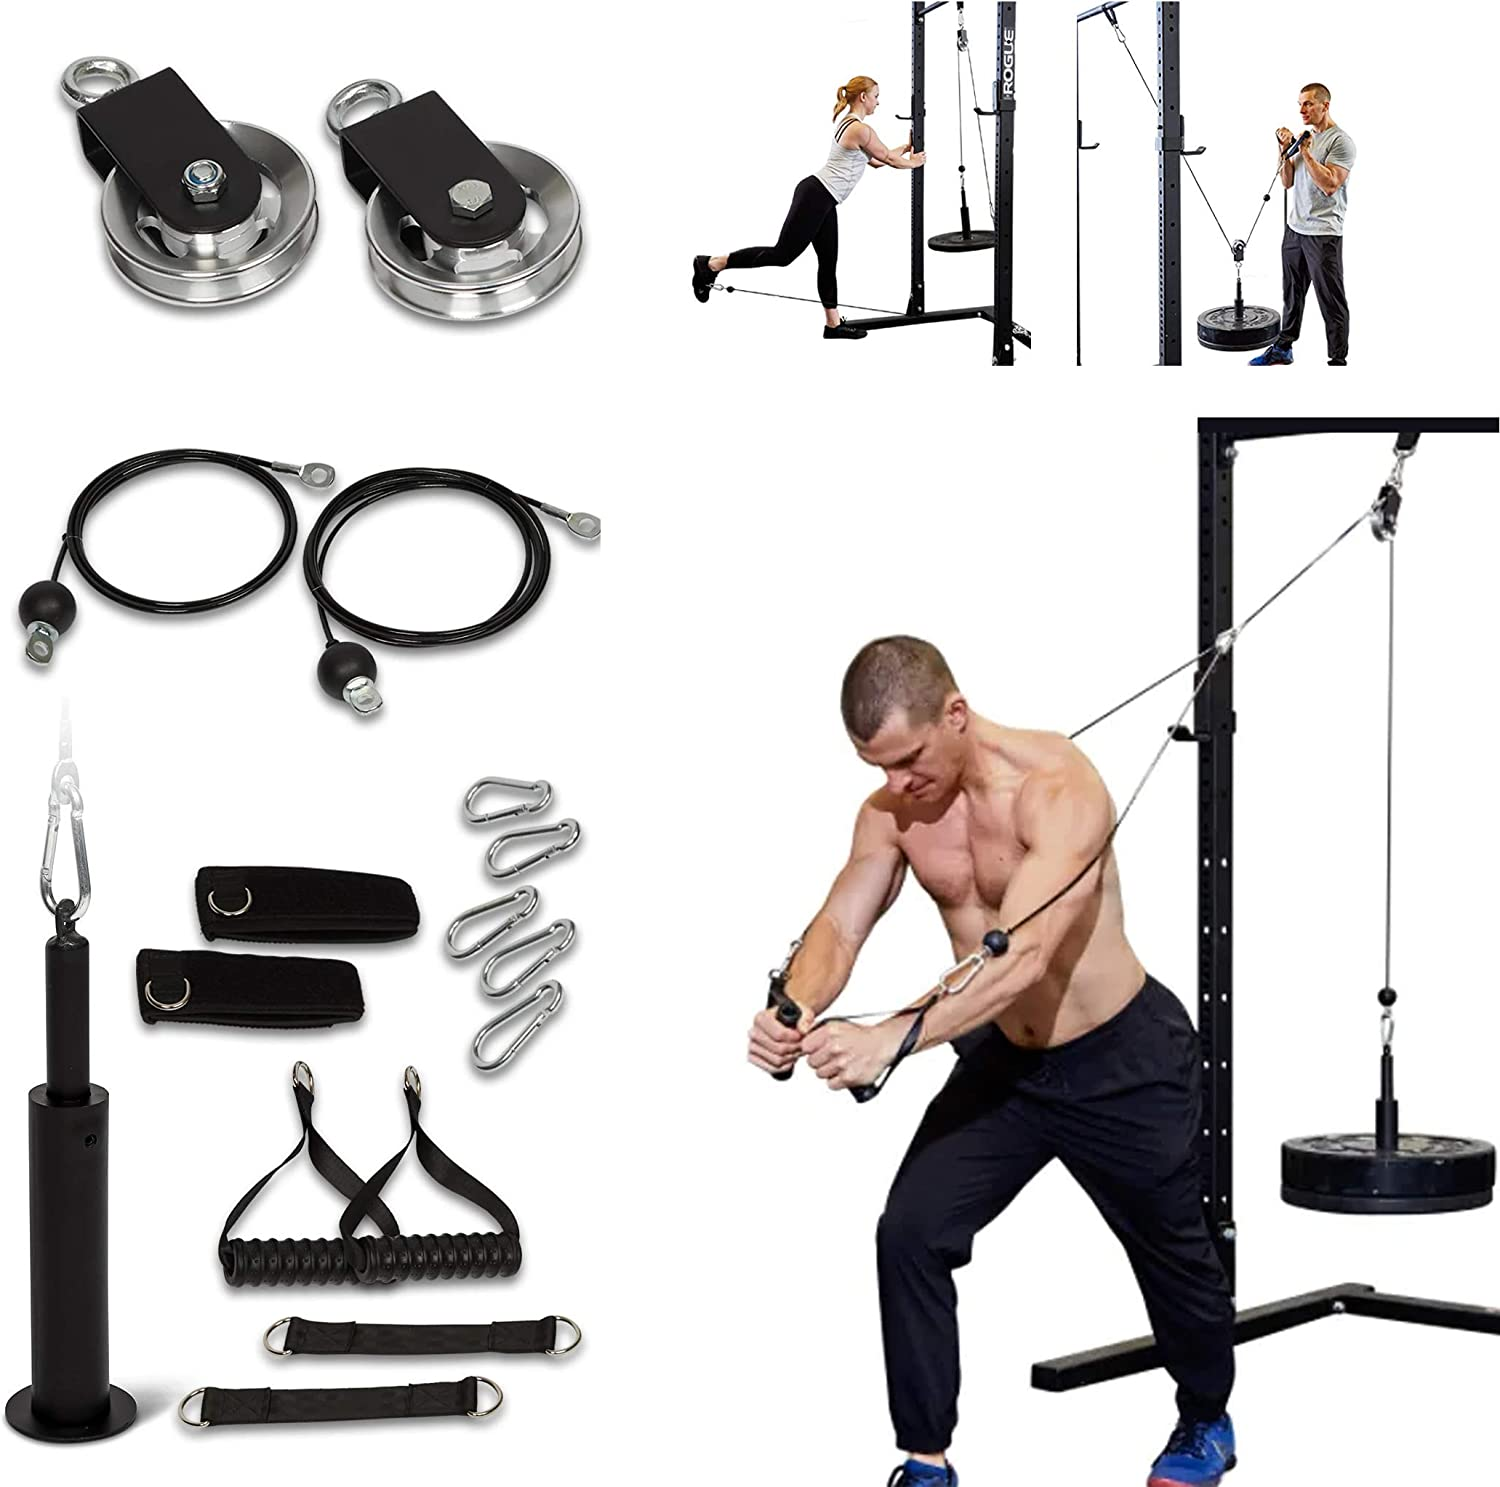 Goldboxllc Home Gym Pulley System - 200 LB LAT Pull Down Machine - Aluminum Pulleys - Steel Cables - Leg & Glute Toning - Triceps, Biceps Curl - Upgraded Loading Pin - Fast Assembly